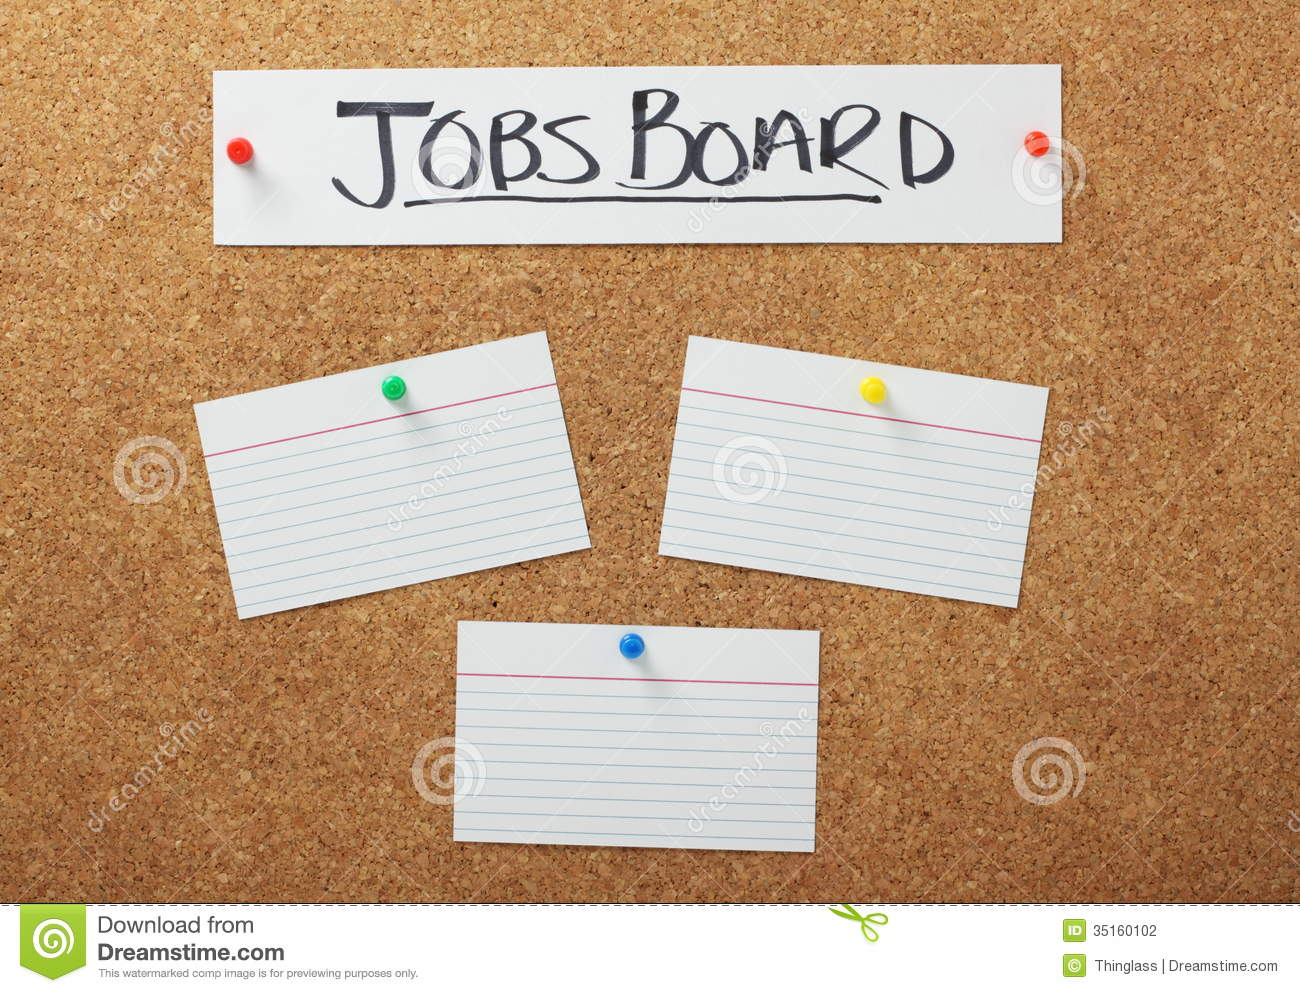 Job Opportunities Vacancies Jobs Board Stock Photo Image Of Help Opportunity Recruiting